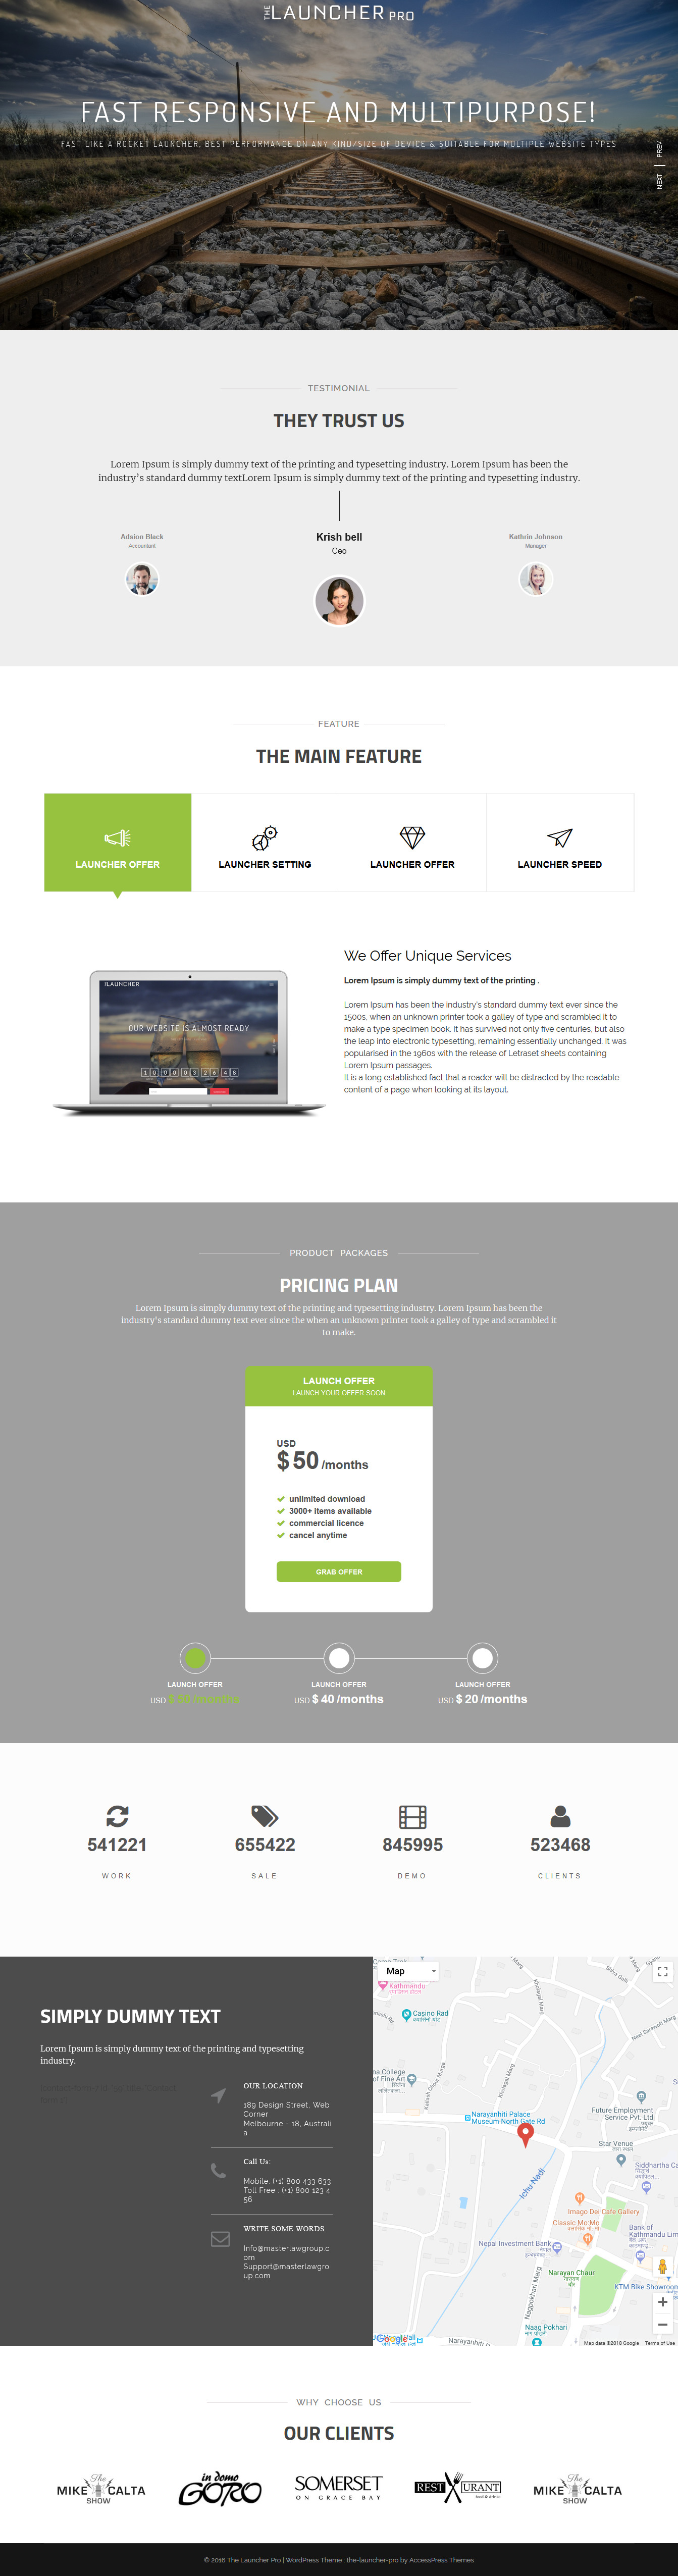 The Launcher Pro - Best Coming Soon and Under Construction Premium WordPress Themes and Templates